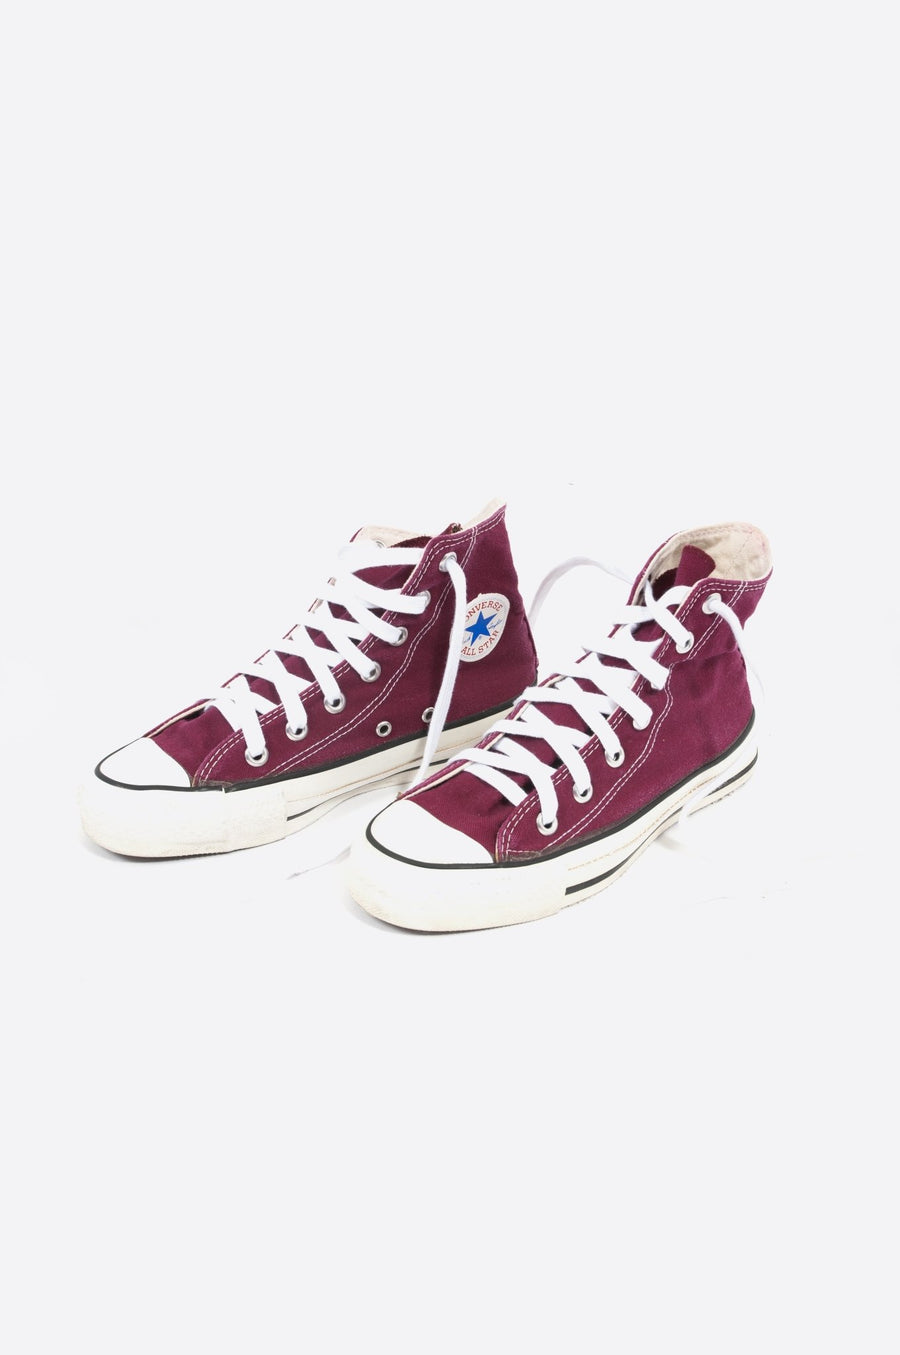 Converse Bordeaux Made in USA - WASTED PARIS